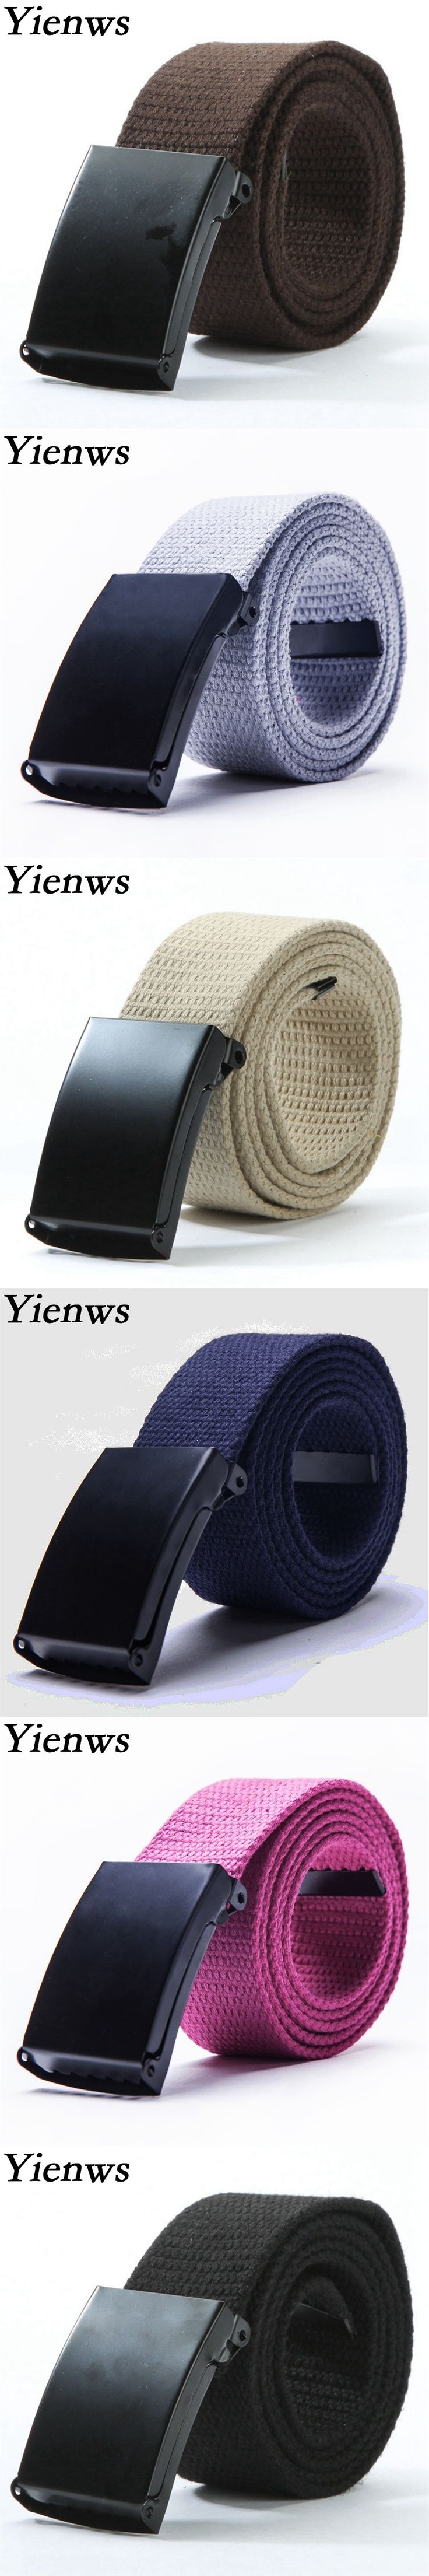 Yienws Western Cowboy Belt For Girl Kemer Boy Belt Strap For Jeans Canvas Belt Outdoor YB003